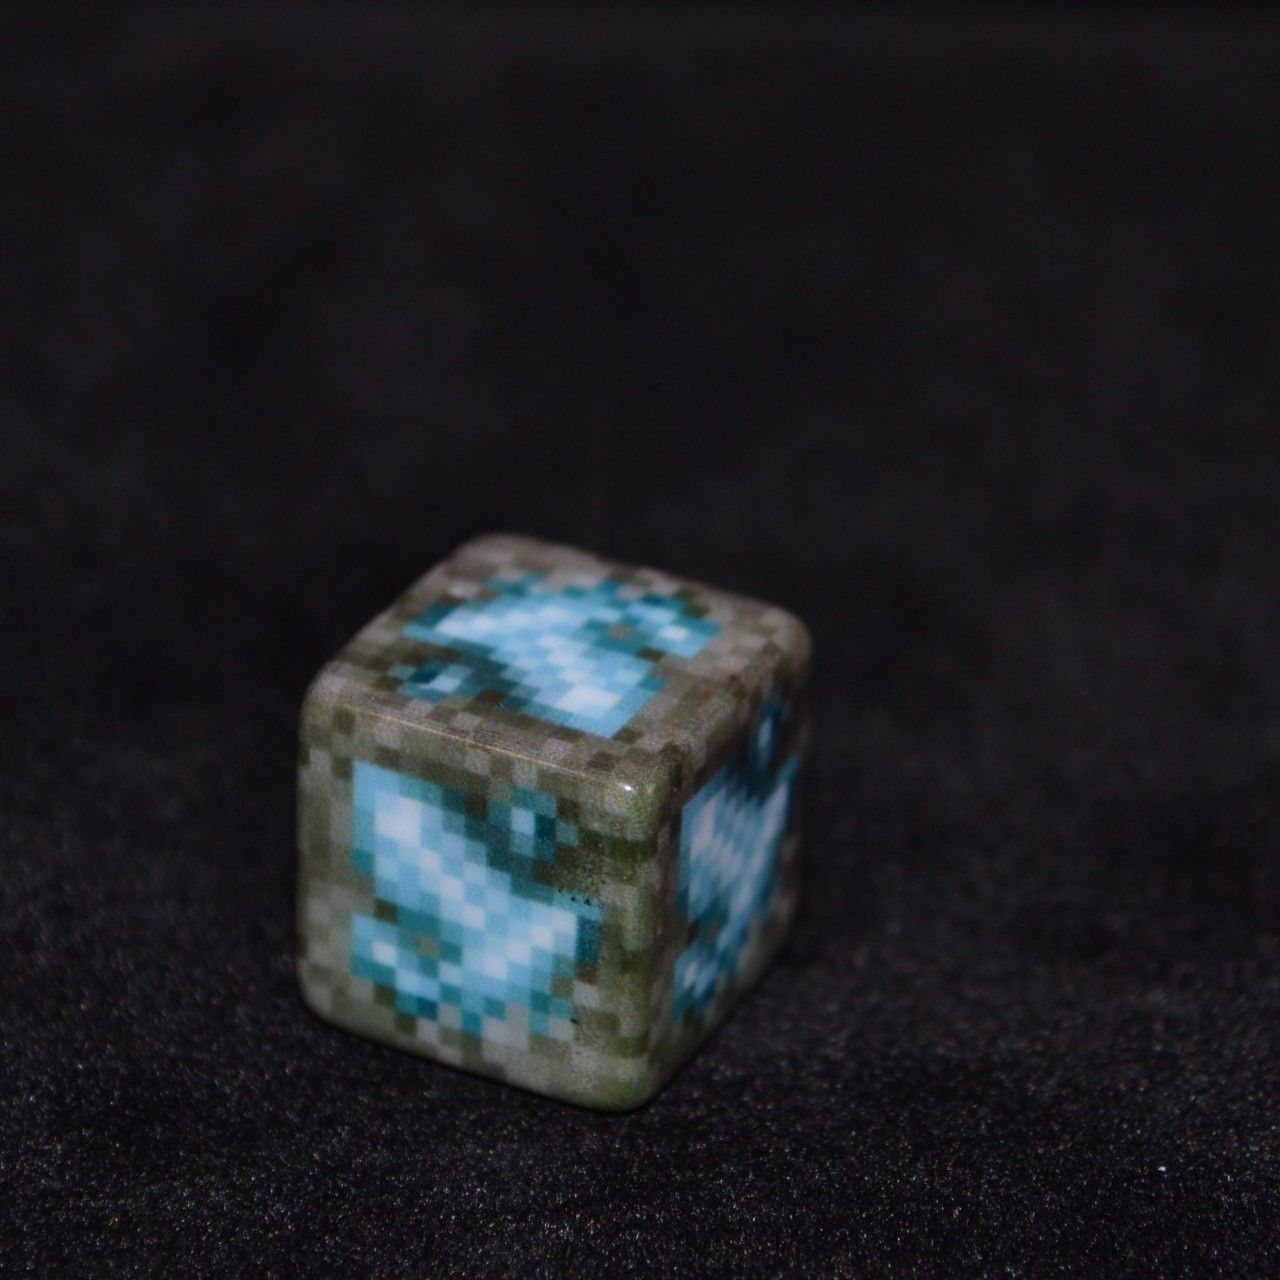 Build Models From Games Like Minecraft In Real Life With This Diamond Ore Block